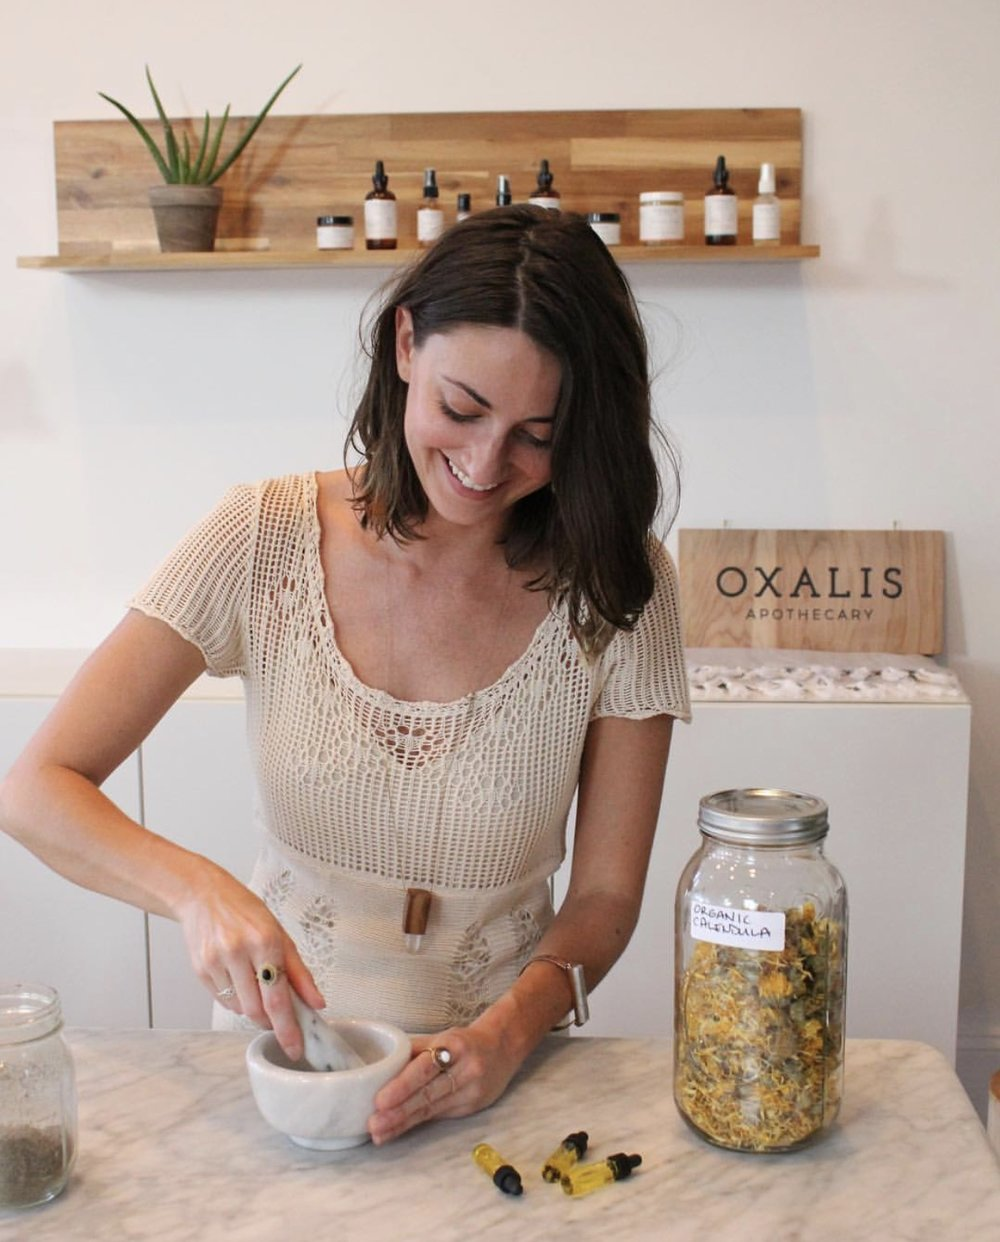 Taking care of our skin and well-being should be uncomplicated and uncompromising. - - Erin Wexstten